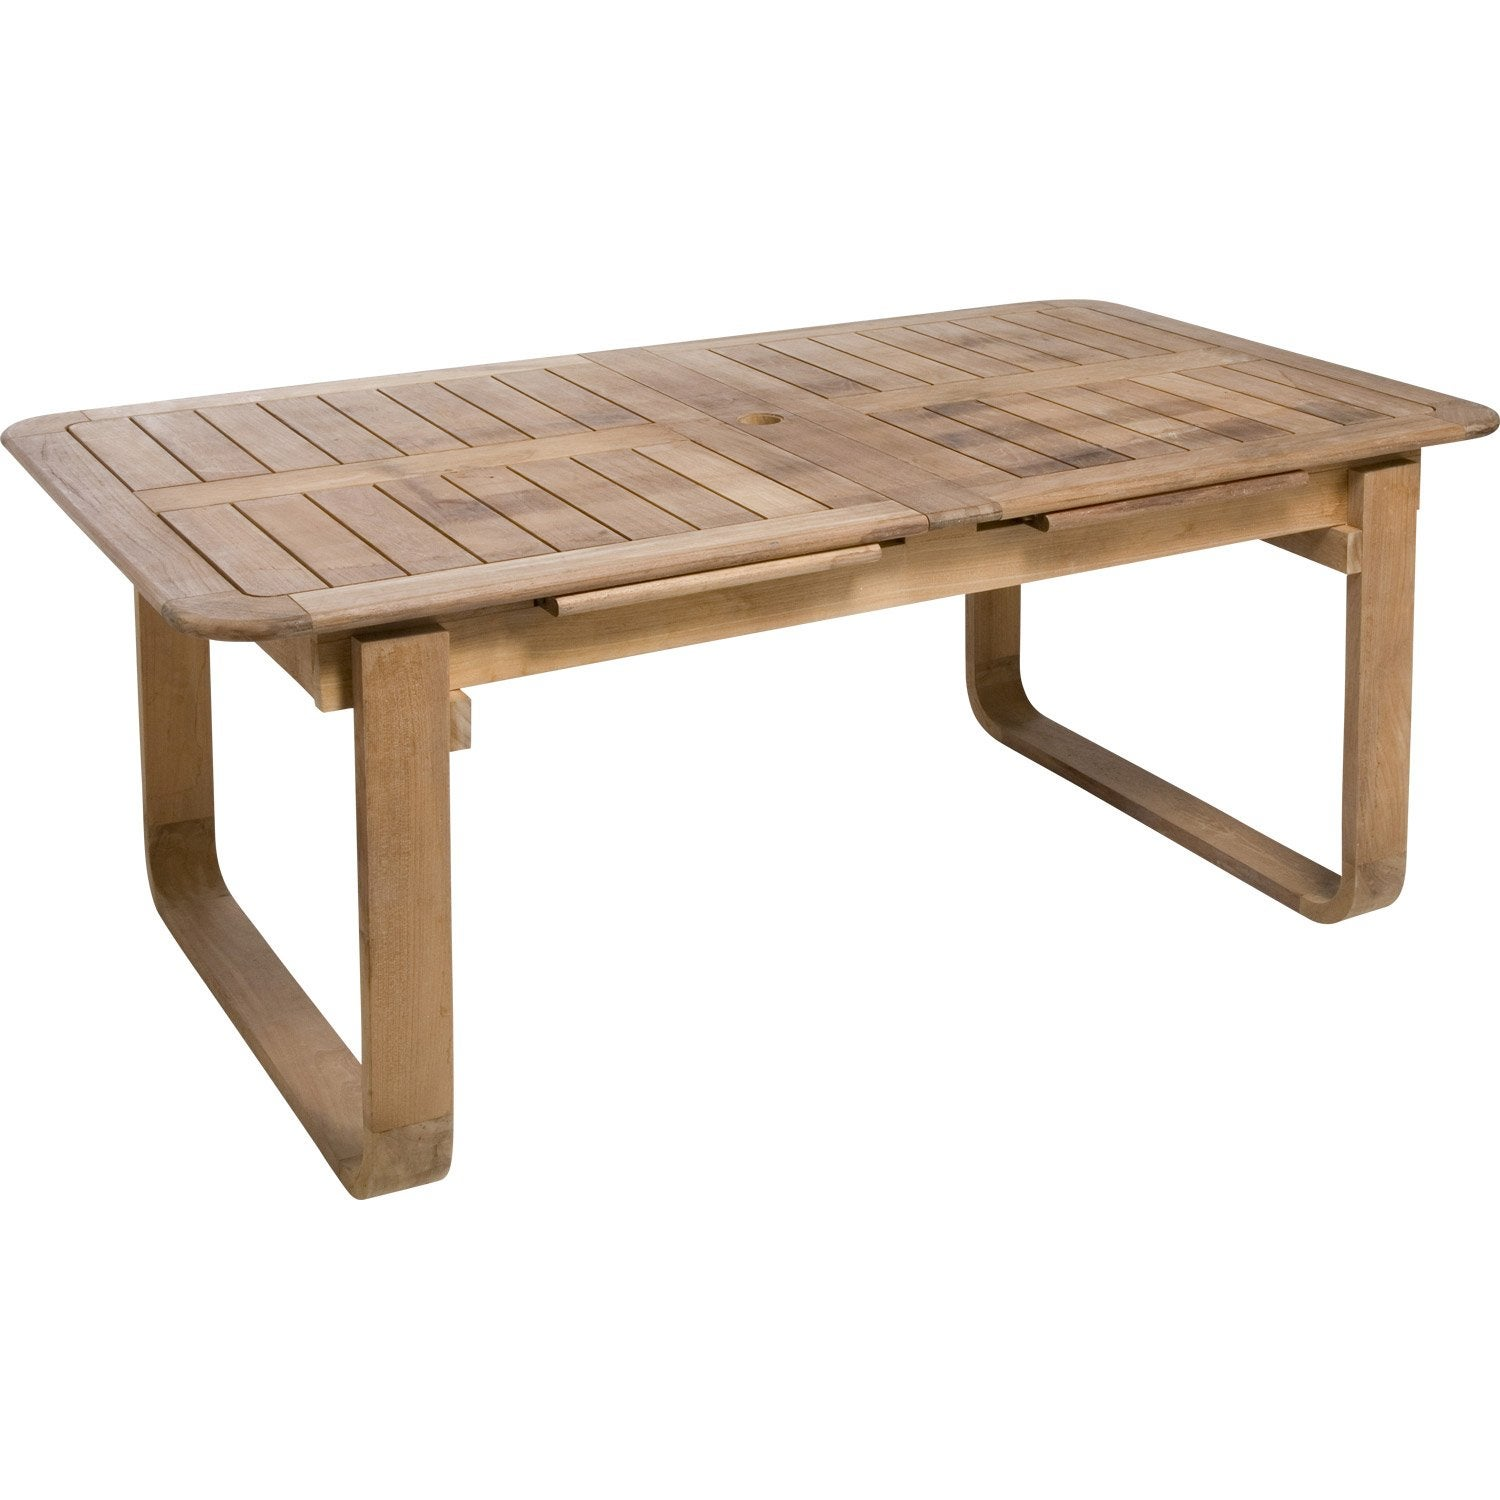 Table de jardin avec rallonge leroy merlin for Table jardin geant casino